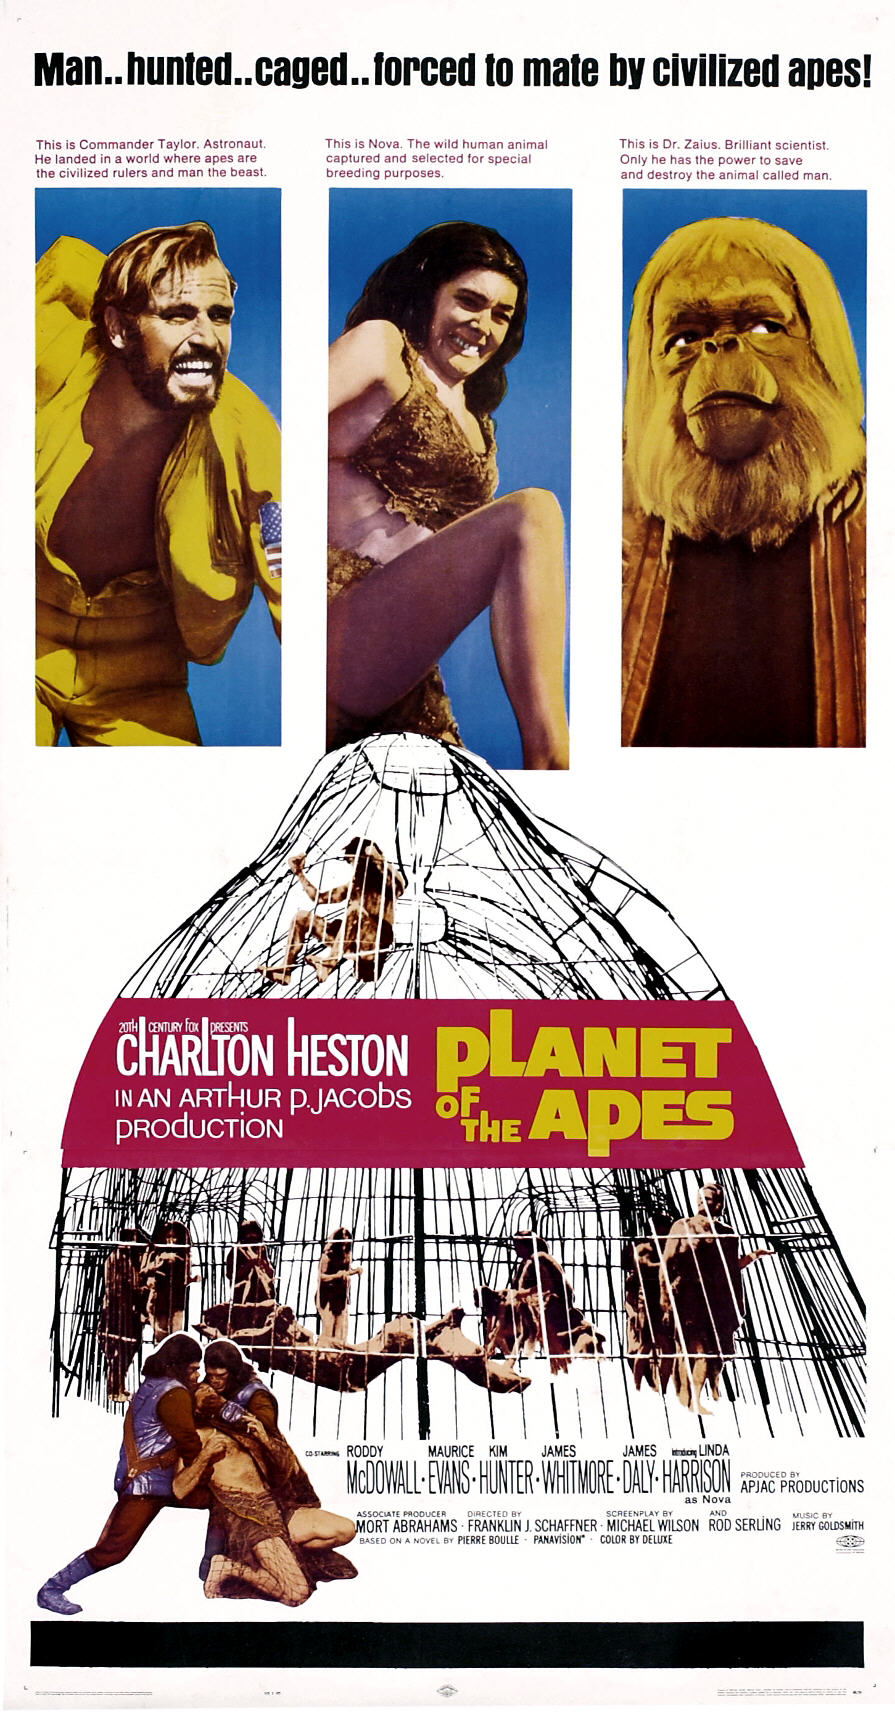 https://www.film.ru/sites/default/files/movies/posters/Planet-of-the-Apes-21.jpg